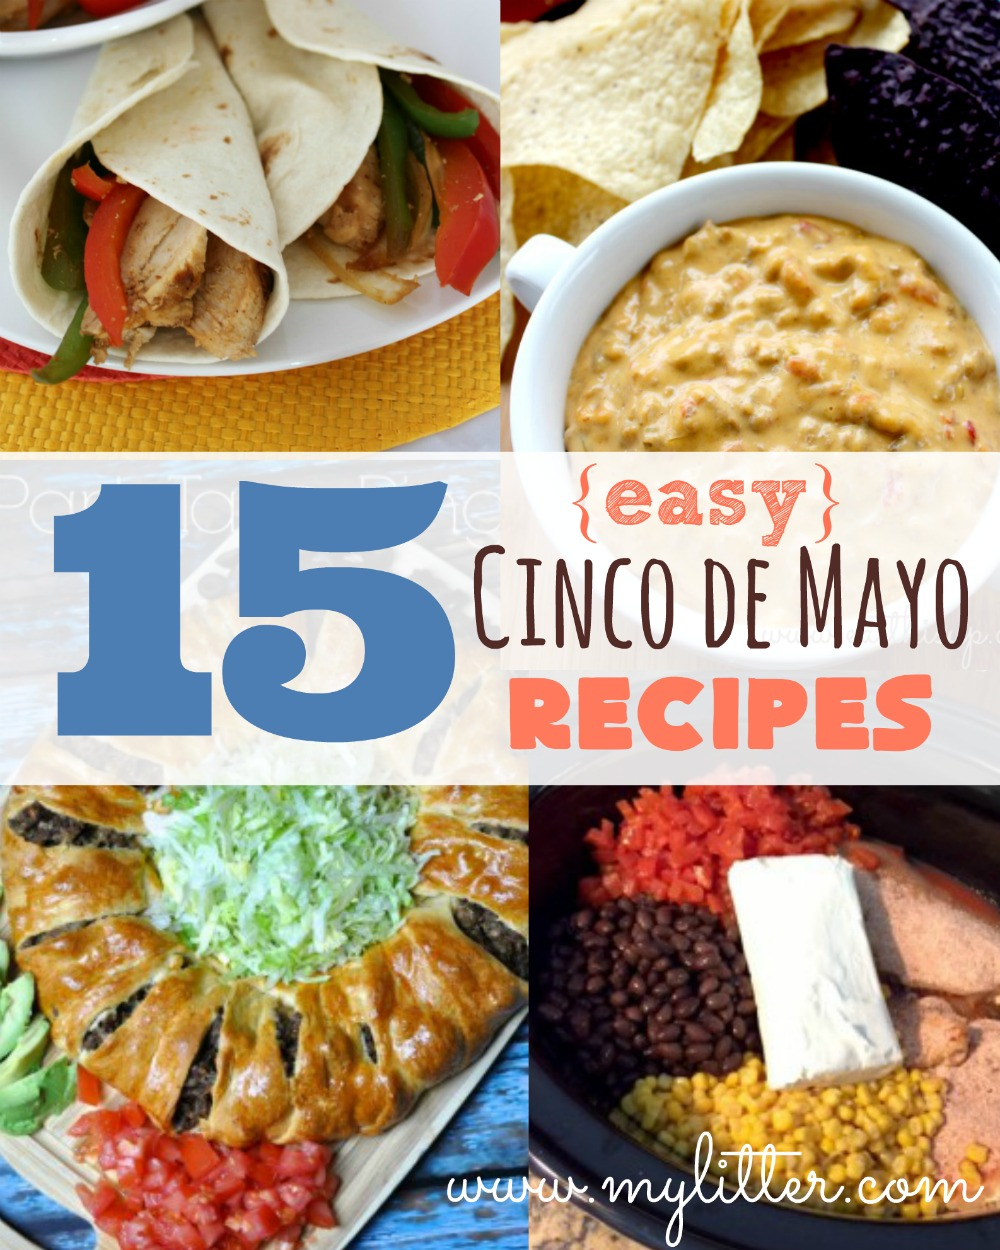 15 Easy Manicure Ideas For Easter: 15 Easy Cinco De Mayo Recipes